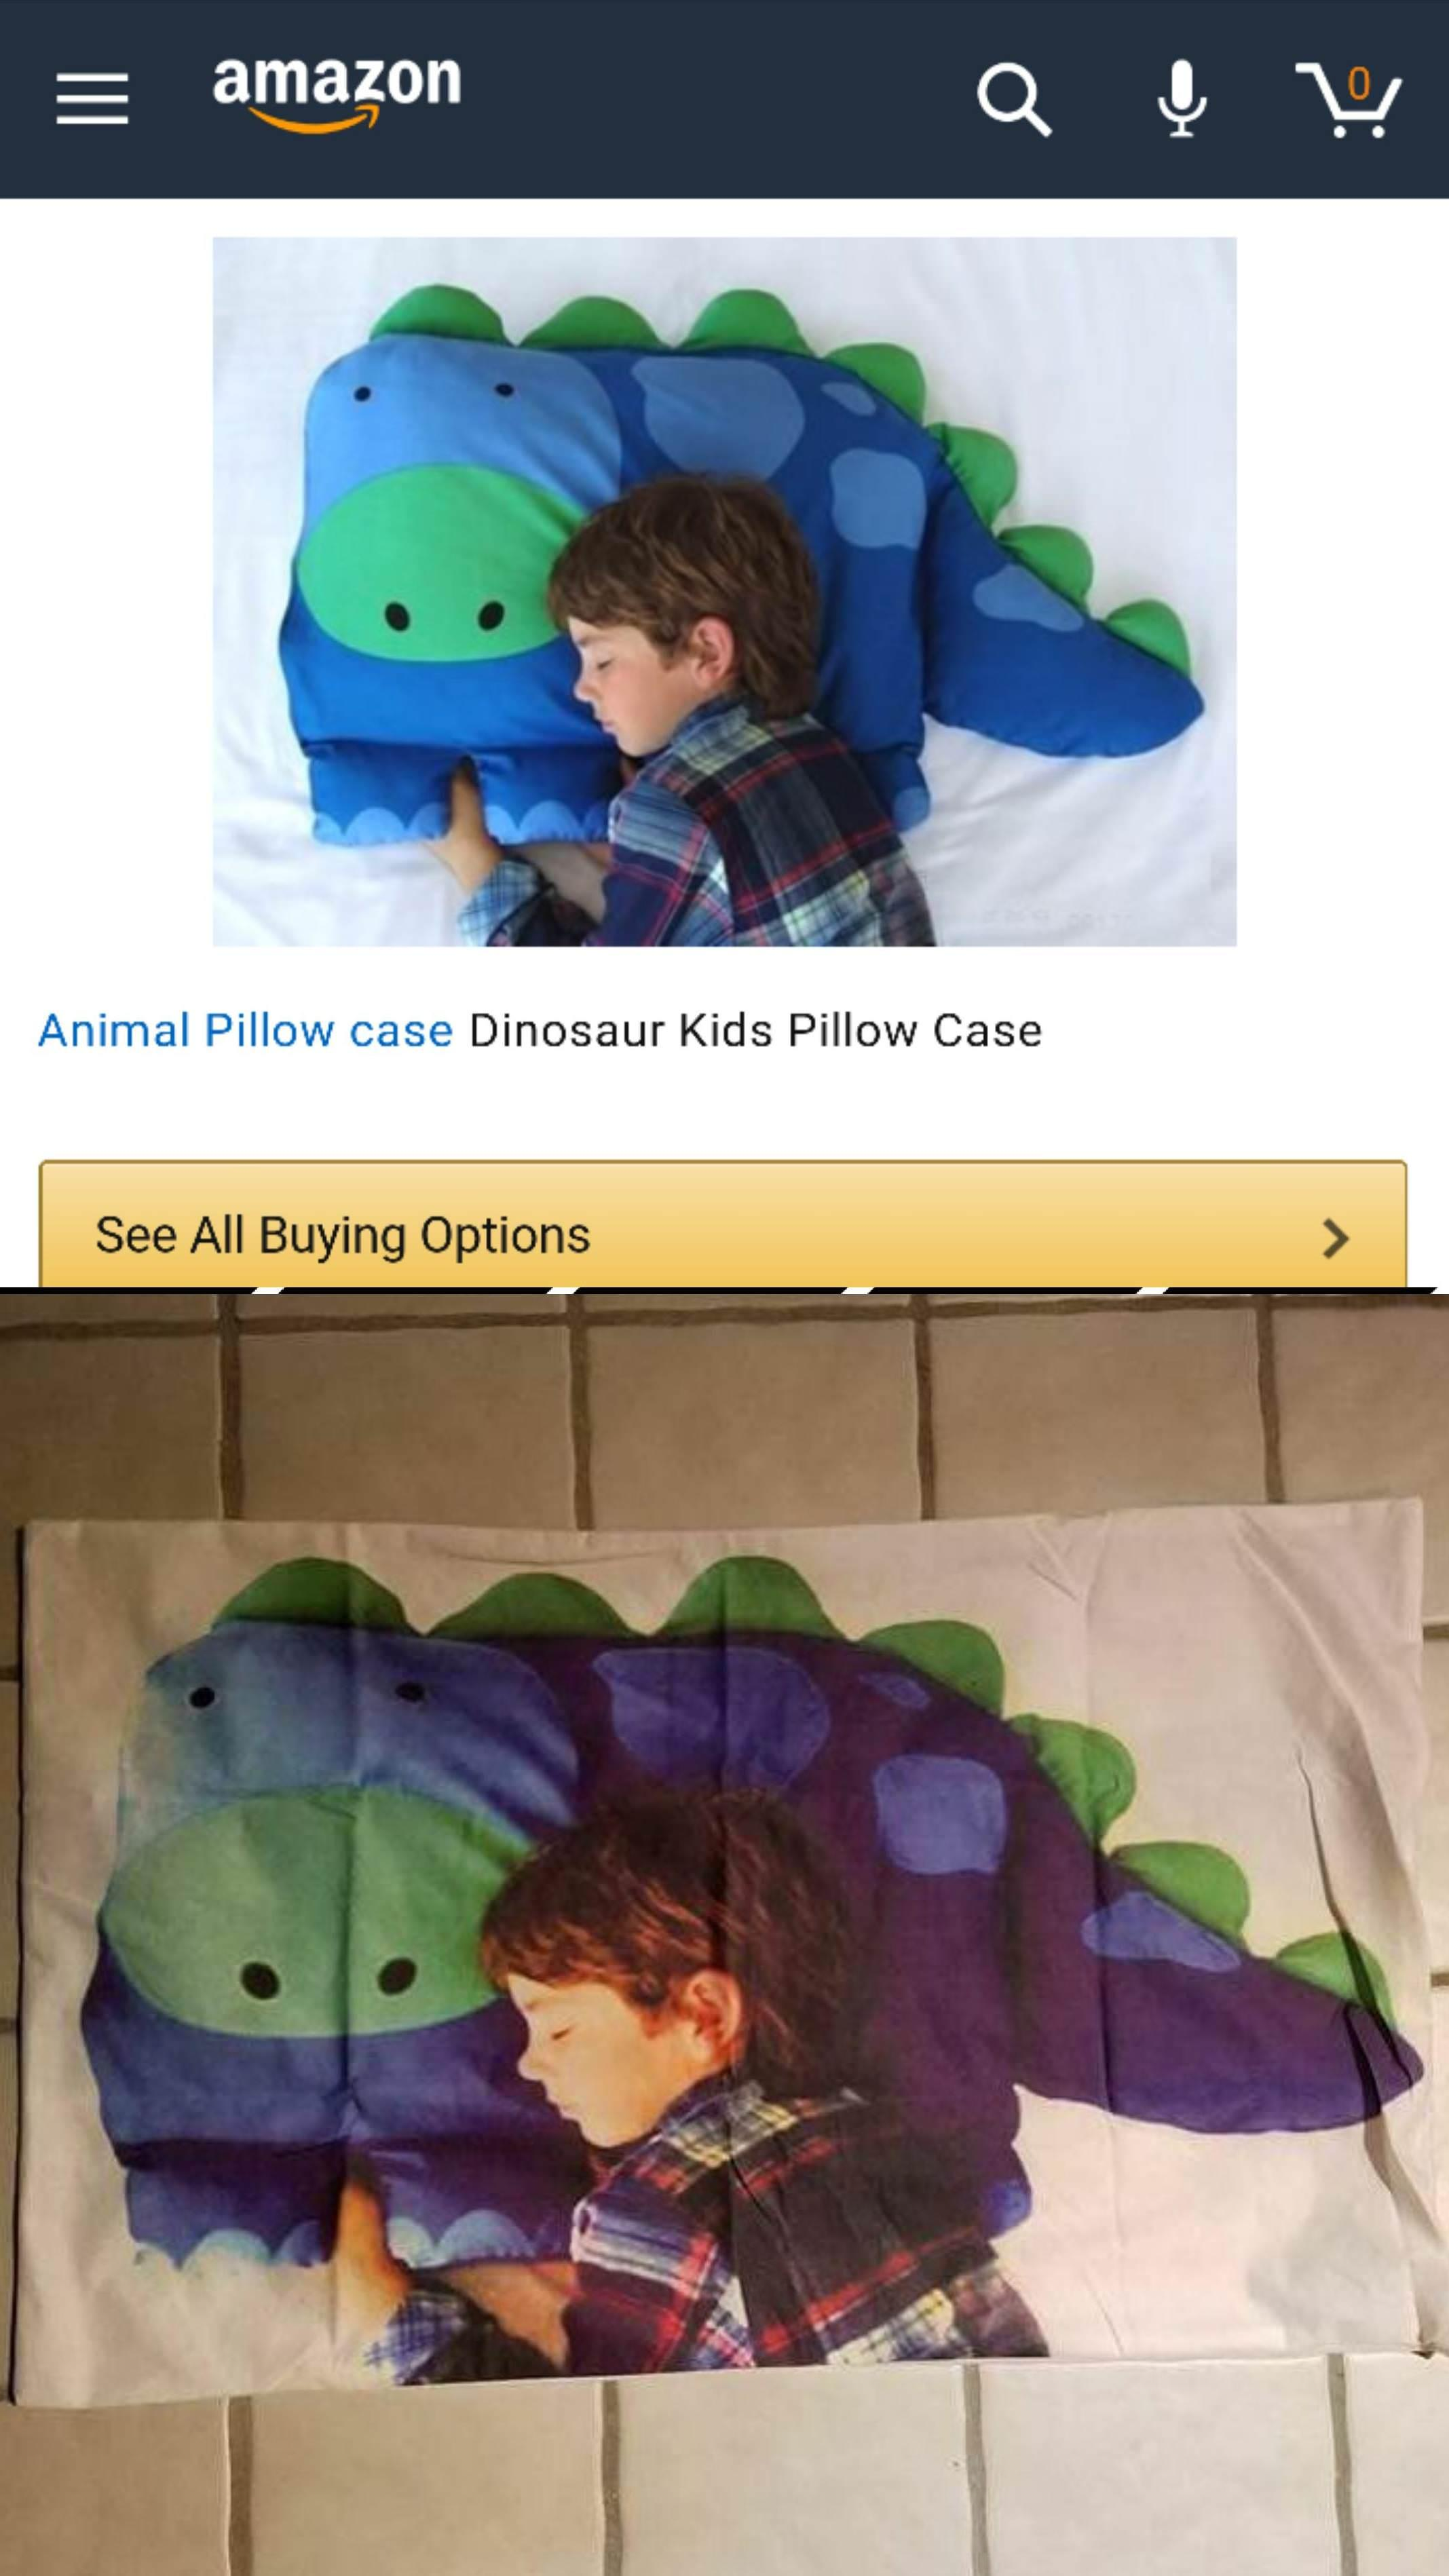 dinosaur-pillow-case-1559584731027.jpg